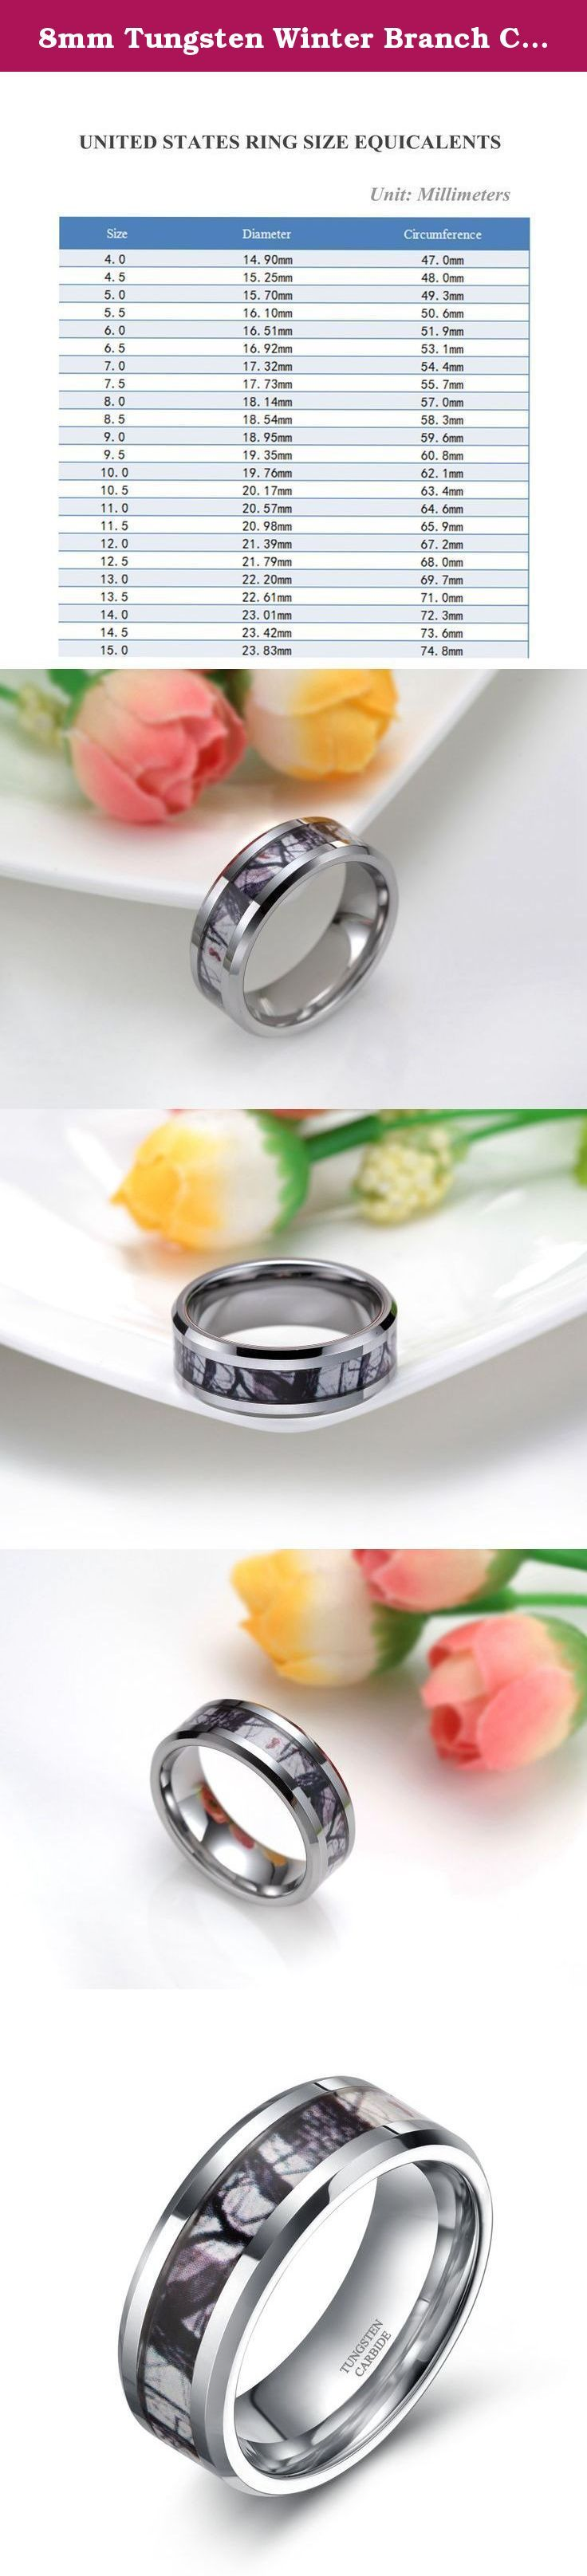 8mm Tungsten Winter Branch Camouflage Inlay Hunting Ring Wedding Engagement Band Comfort Fit Size 5-10(10). Why choose Frank S. Burton store to purchase? Reason.1: Amazon Authentication Brand;(Guaranteed Quality ) Reason.2: True & Pure Tungsten Material;(Scratch Proof & Hypoallergenic & Never Fade) Reason.3: Comfortable & Exquisite & Amazon Unique Design;(High Polish & Comfort Fit) Reason.4: Amazon Excellent and Fast Delivery;(Next,Second Day Delivery Option) Reason.5: Timely and 100%...